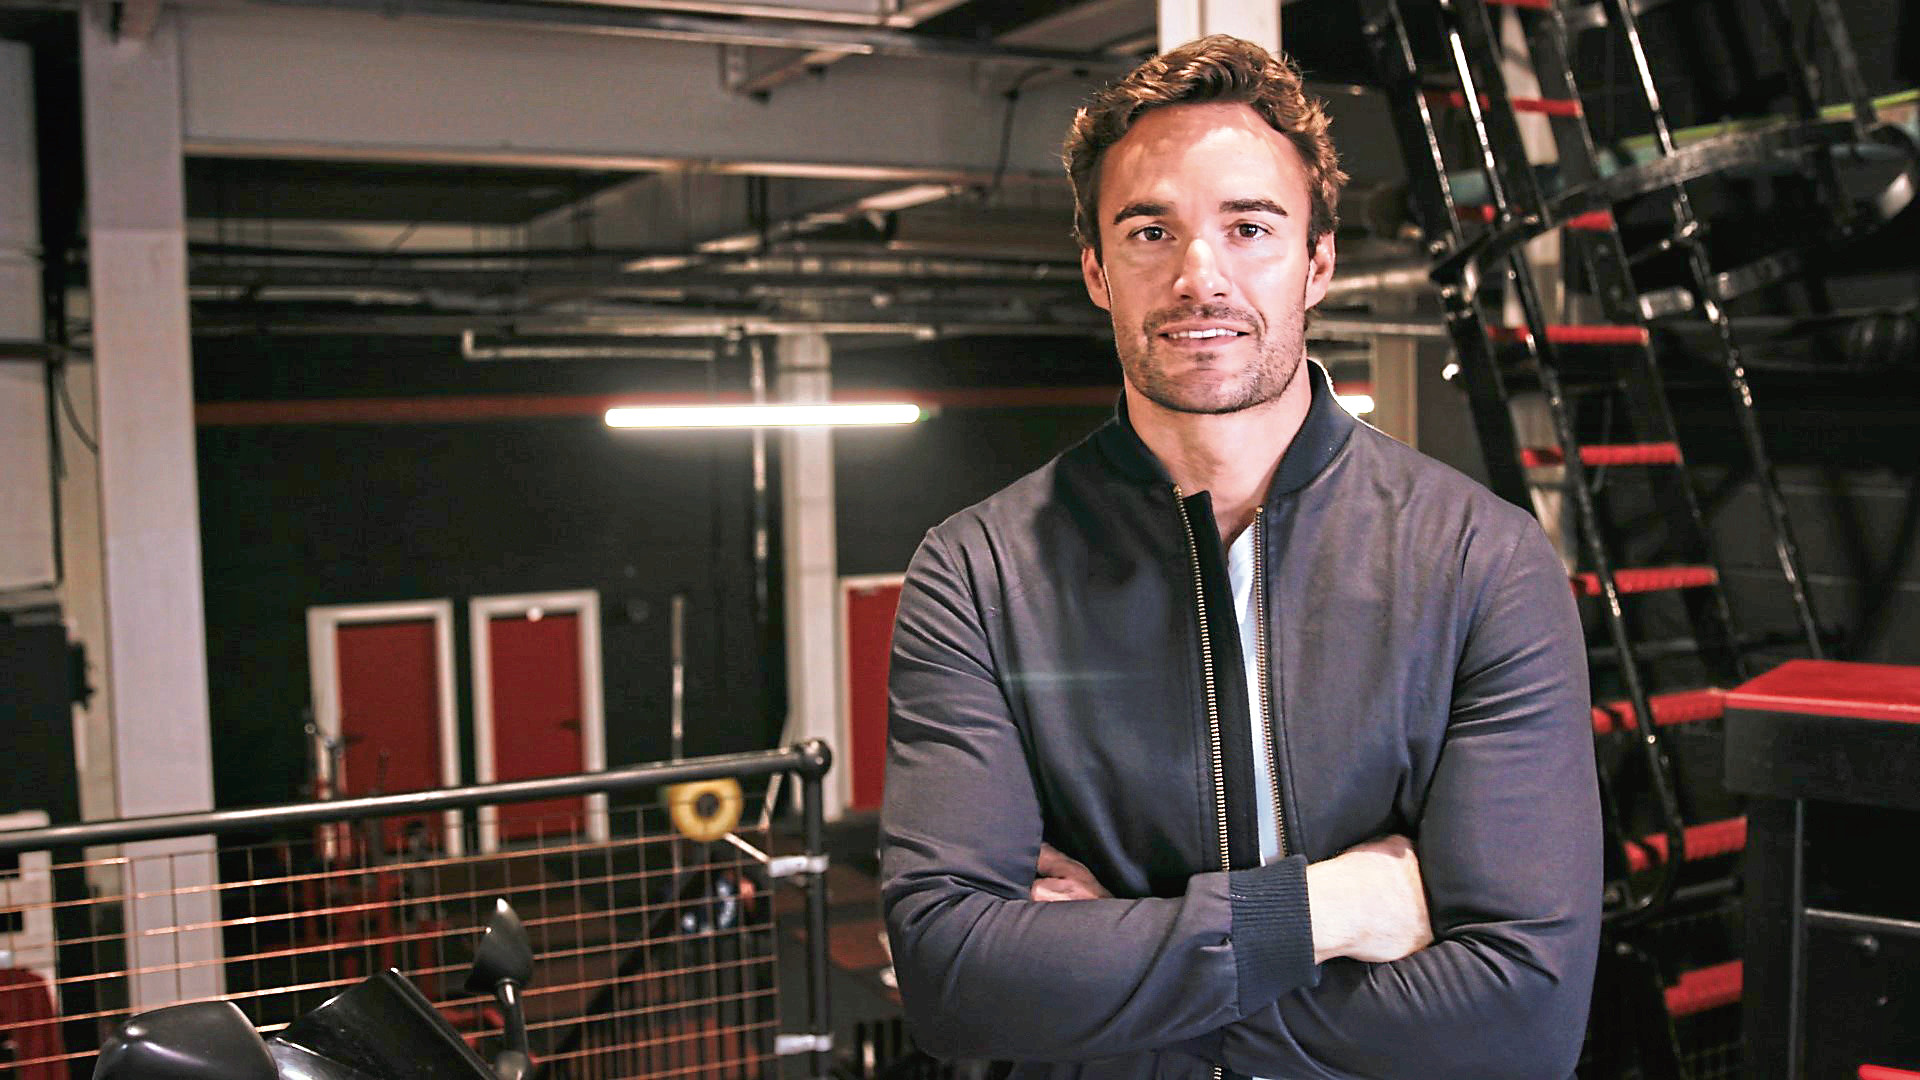 Ex- Scotland rugby player and Strictly Come Dancing contestant, Thom Evans, is fronting the campaign.